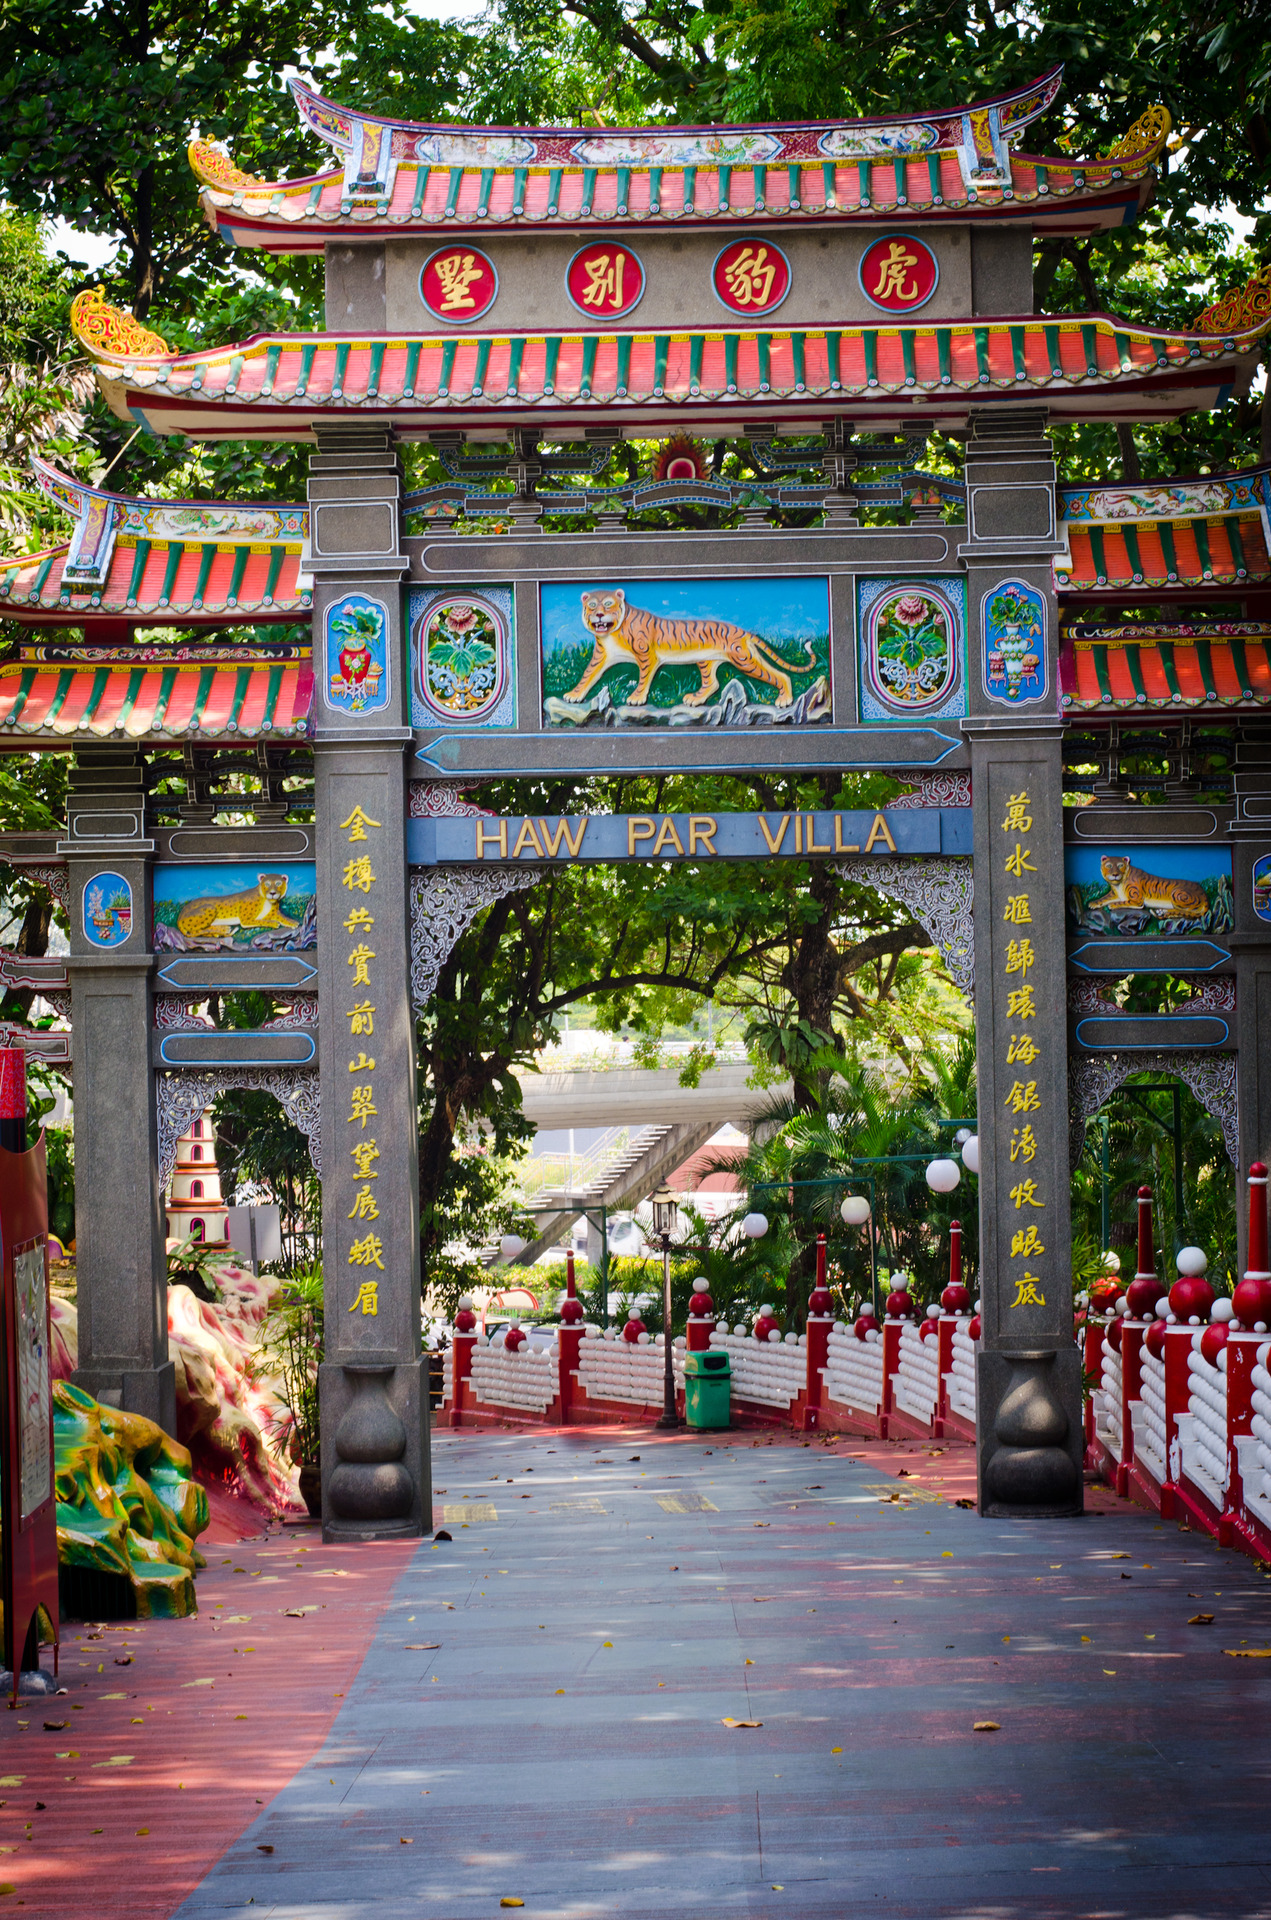 The Famed Haw Par Villa, also known as Tiger Balm Gardens.